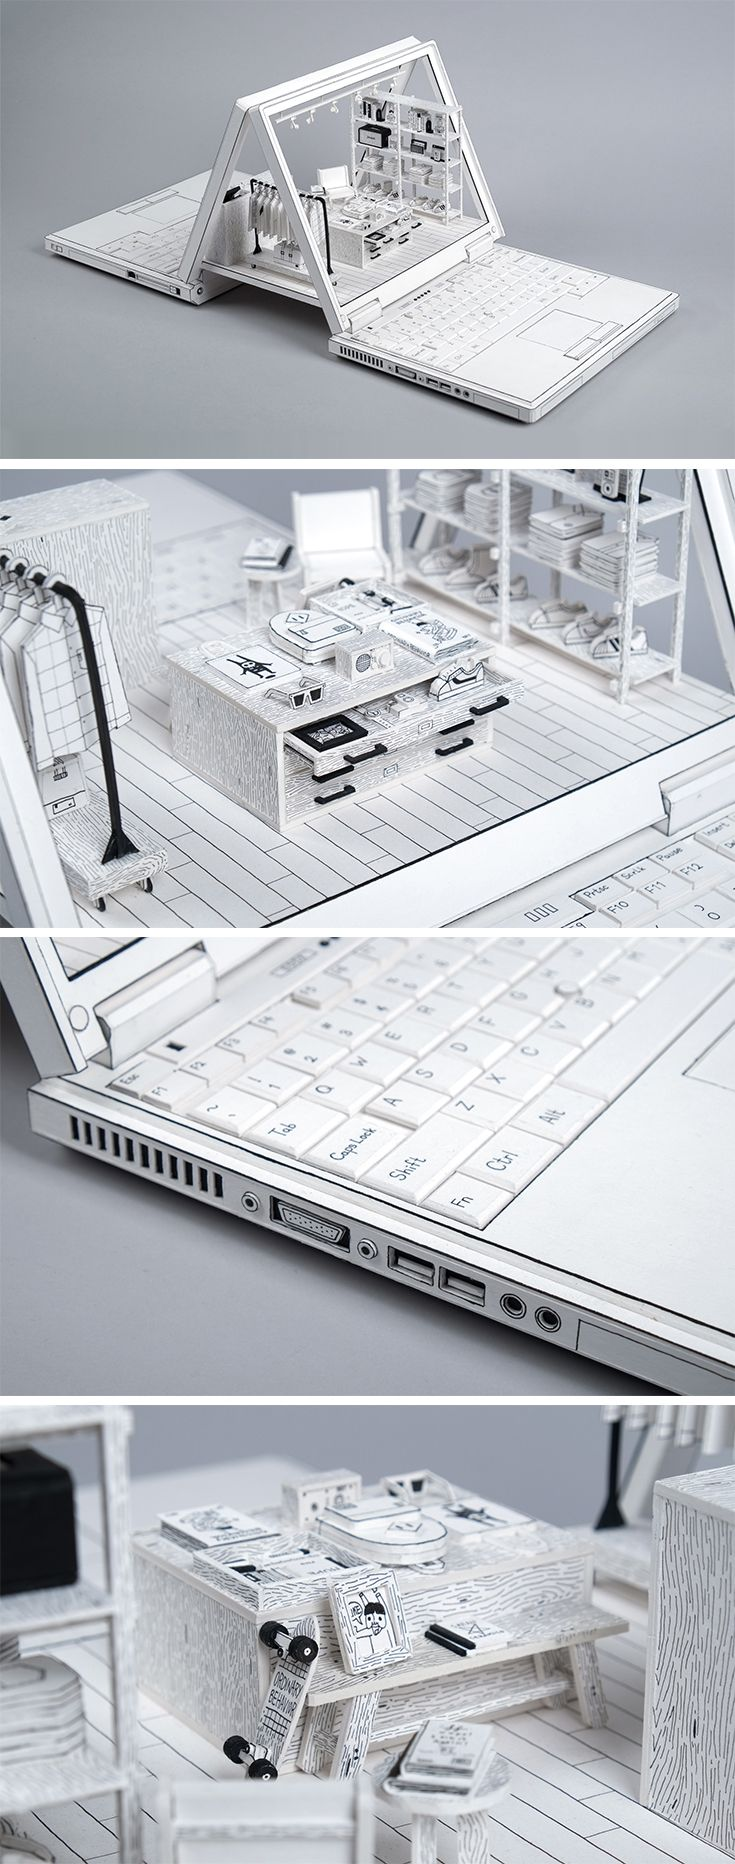 Click for more info/pics! | Cardboard Dioramas of Laptops Depicting Human Relationships with Technology by Kevin LCK #cardboard #paper #art